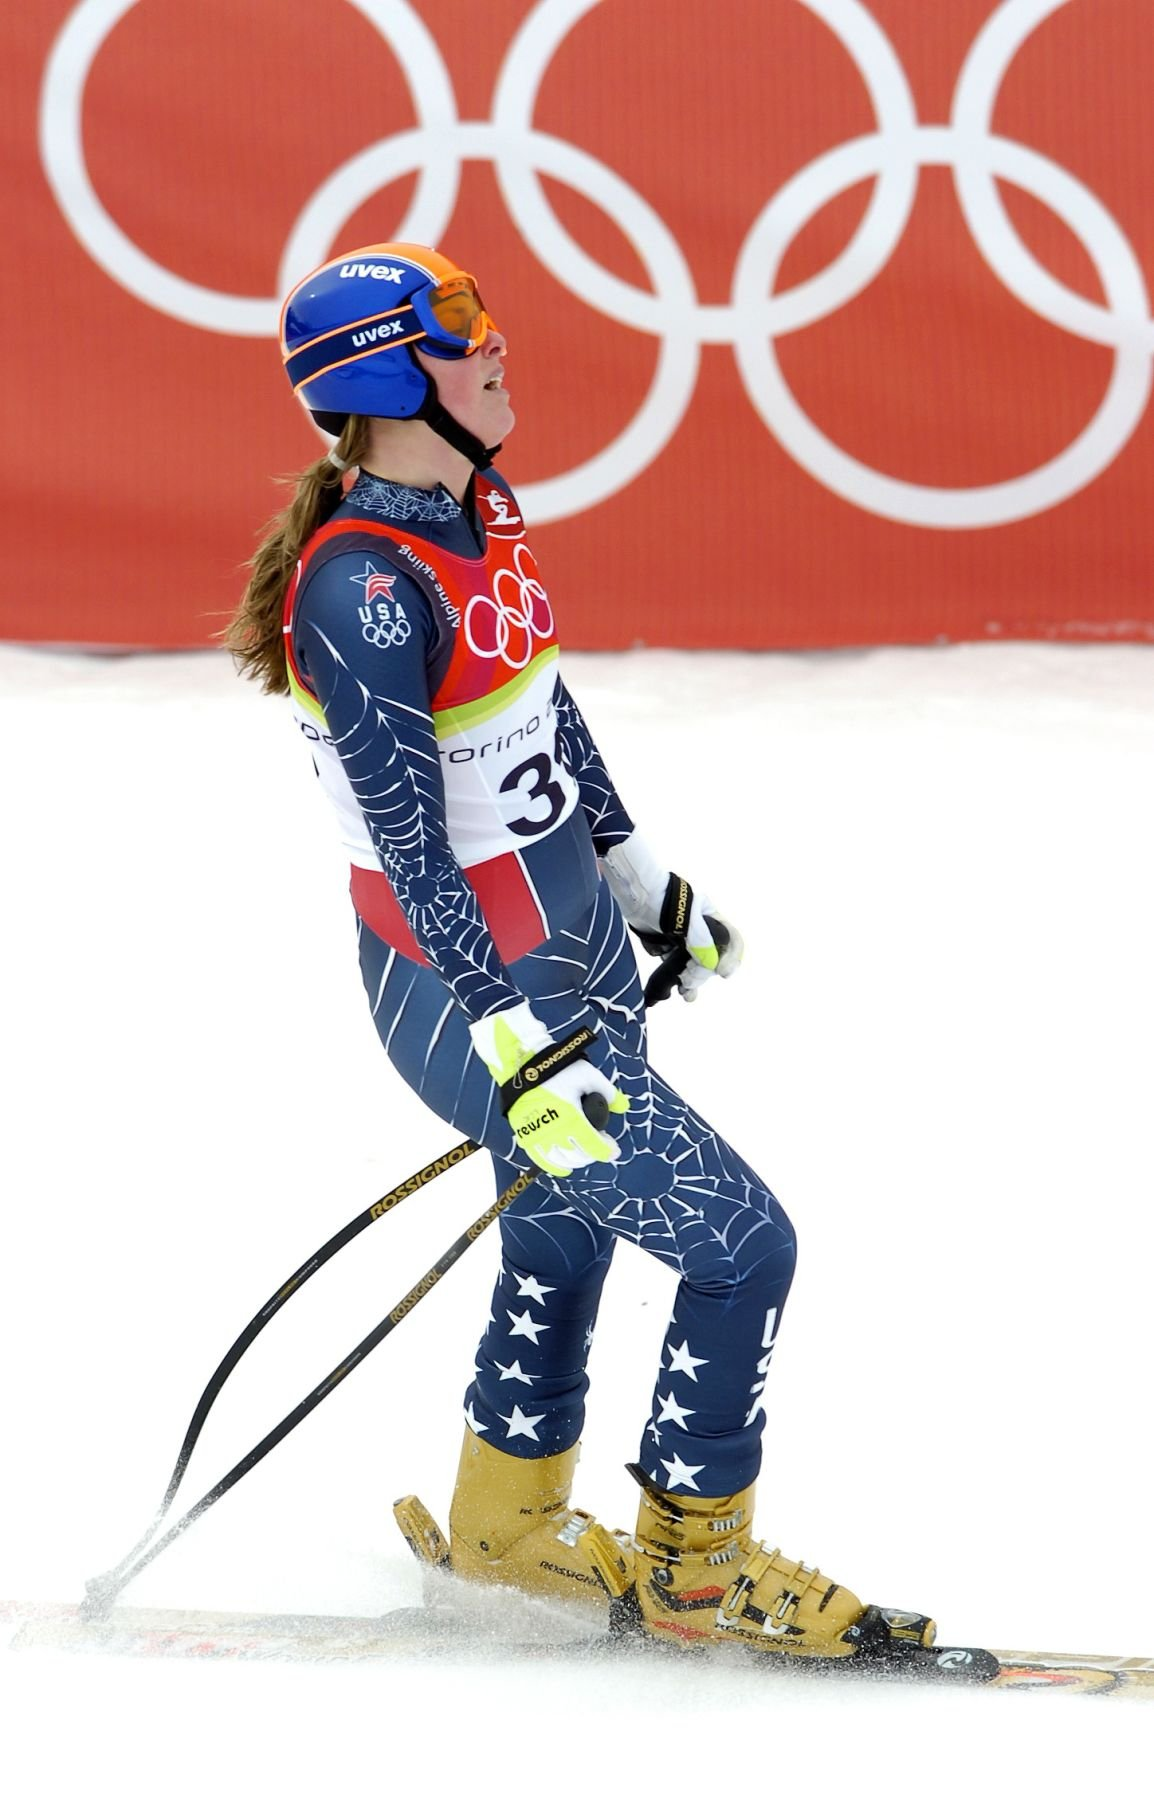 OLY WOMEN'S DOWNHILL